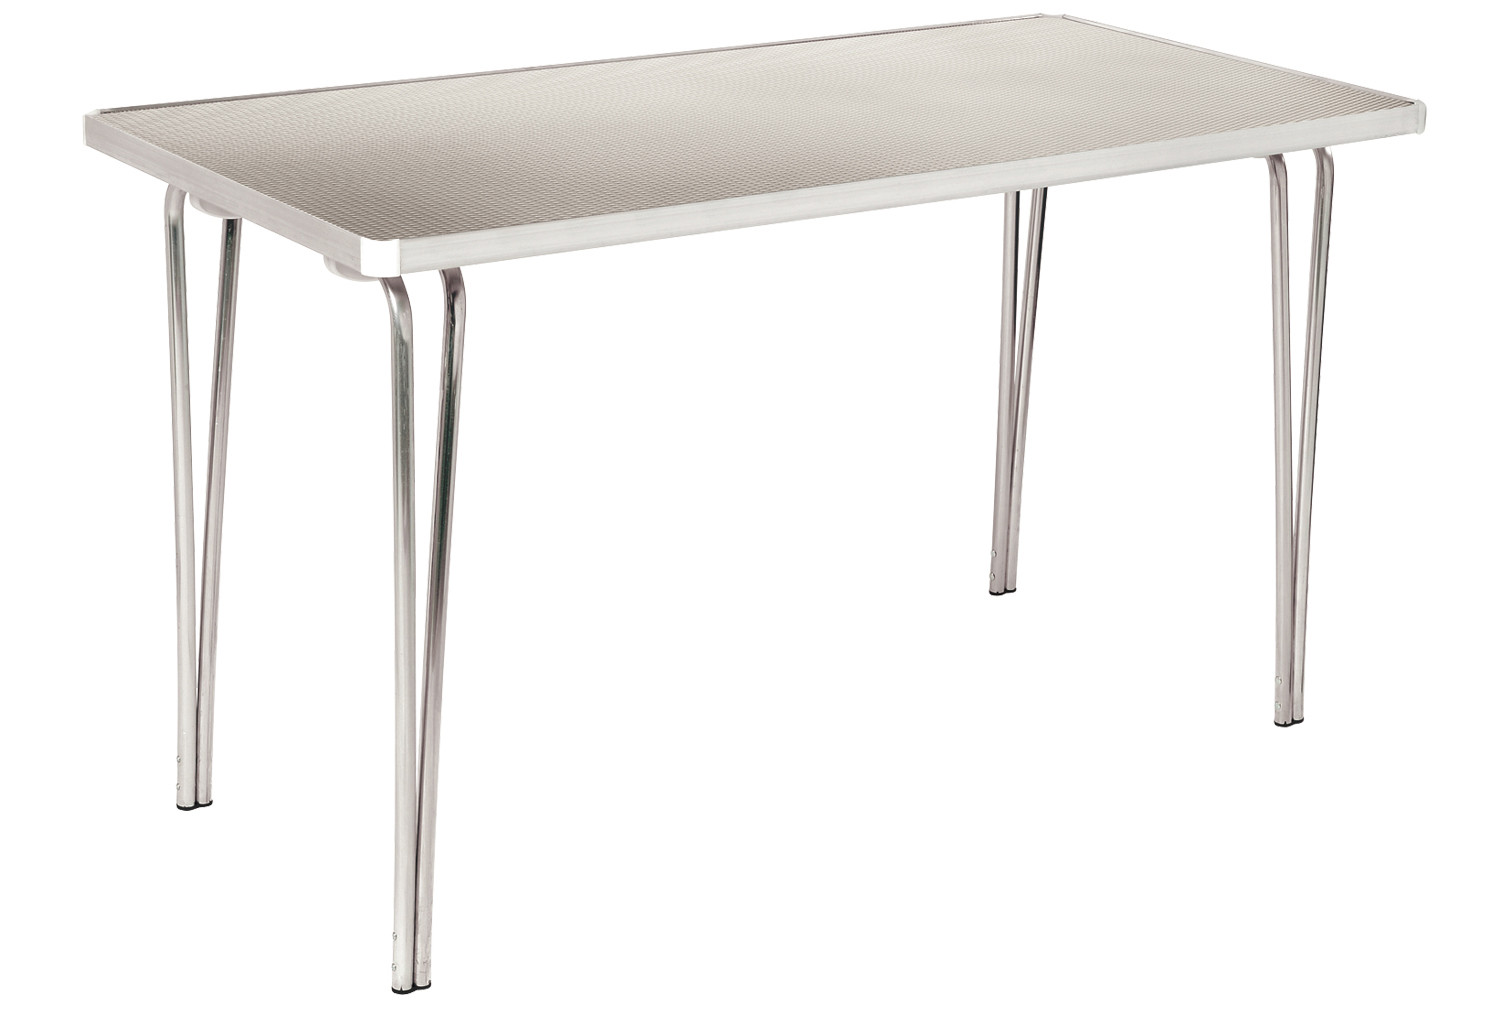 Gopak aluminium folding tables